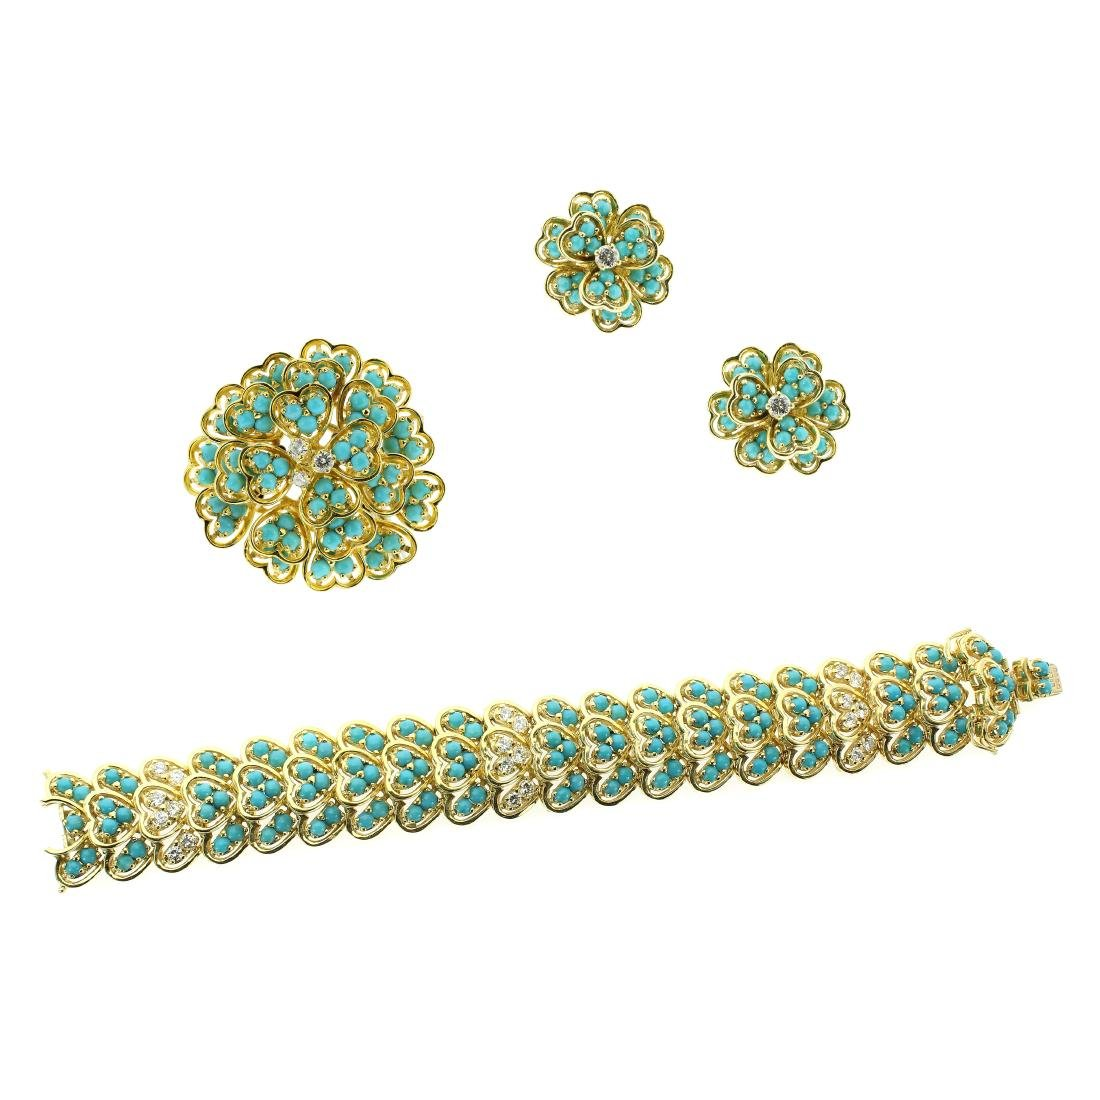 A VINTAGE TURQUOISE AND DIAMOND BRACELET, EARRINGS AND